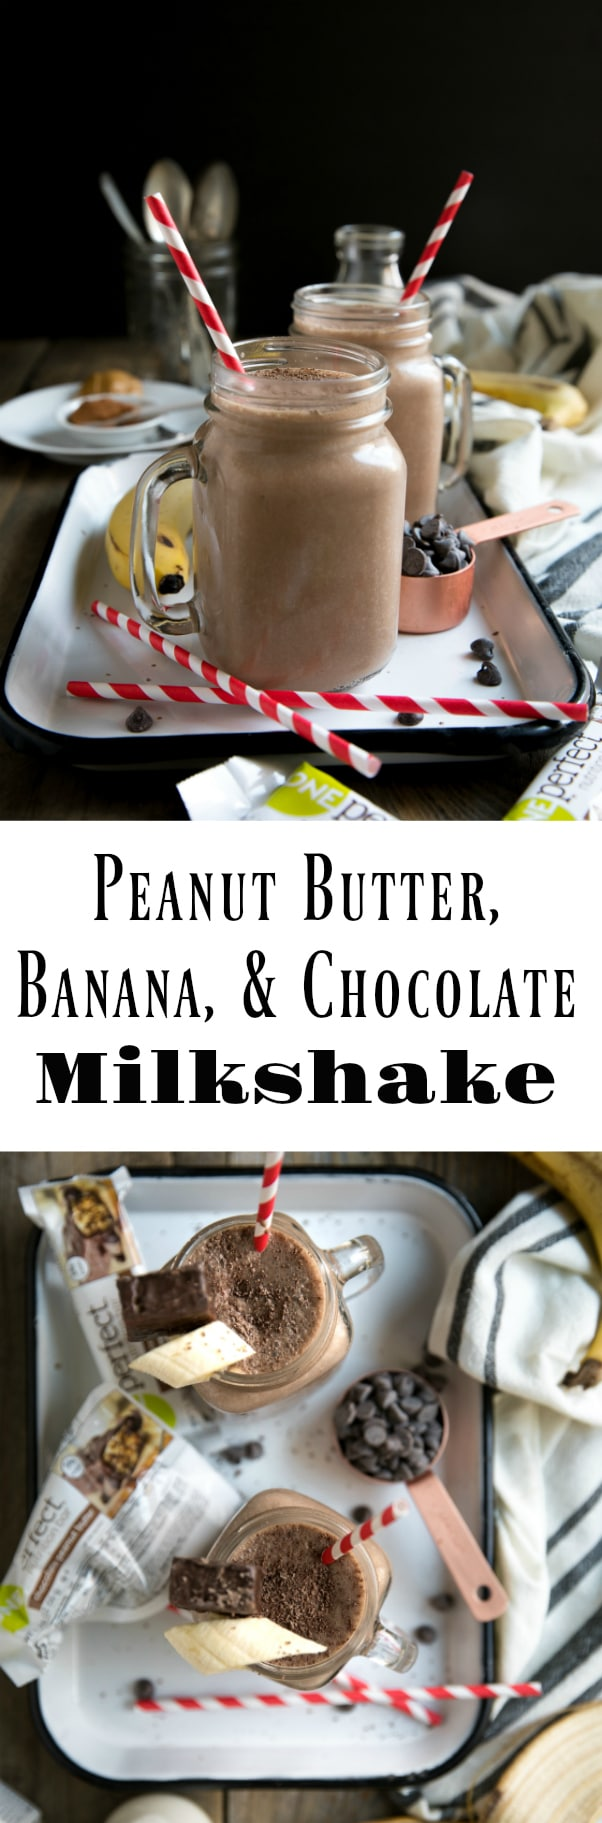 Peanut Butter Banana and Chocolate ZonePerfect Nutrition Bar Milkshake #ad #zoneperfect #milkshake #healthy #breakfast #snack #dessert #smoothie via @theforkedspoon